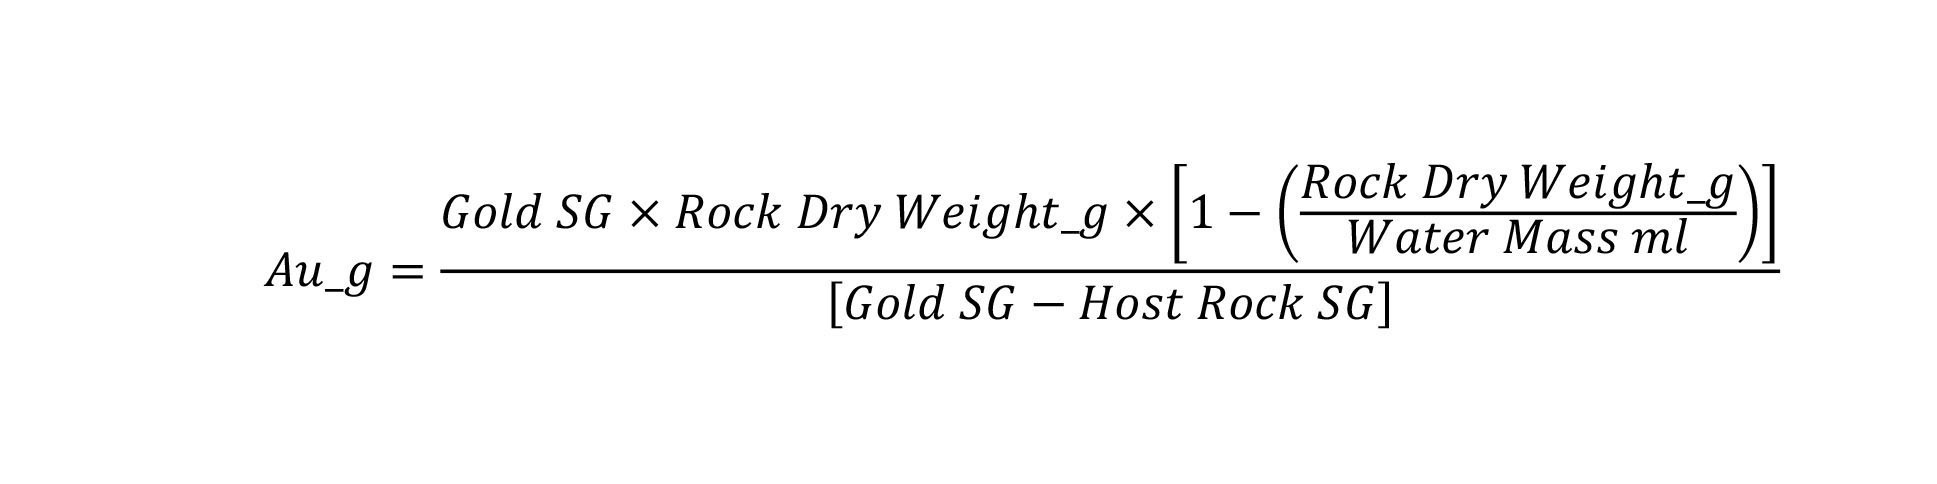 Figure 3: Specific gravity calculation method. (CNW Group/RNC Minerals)